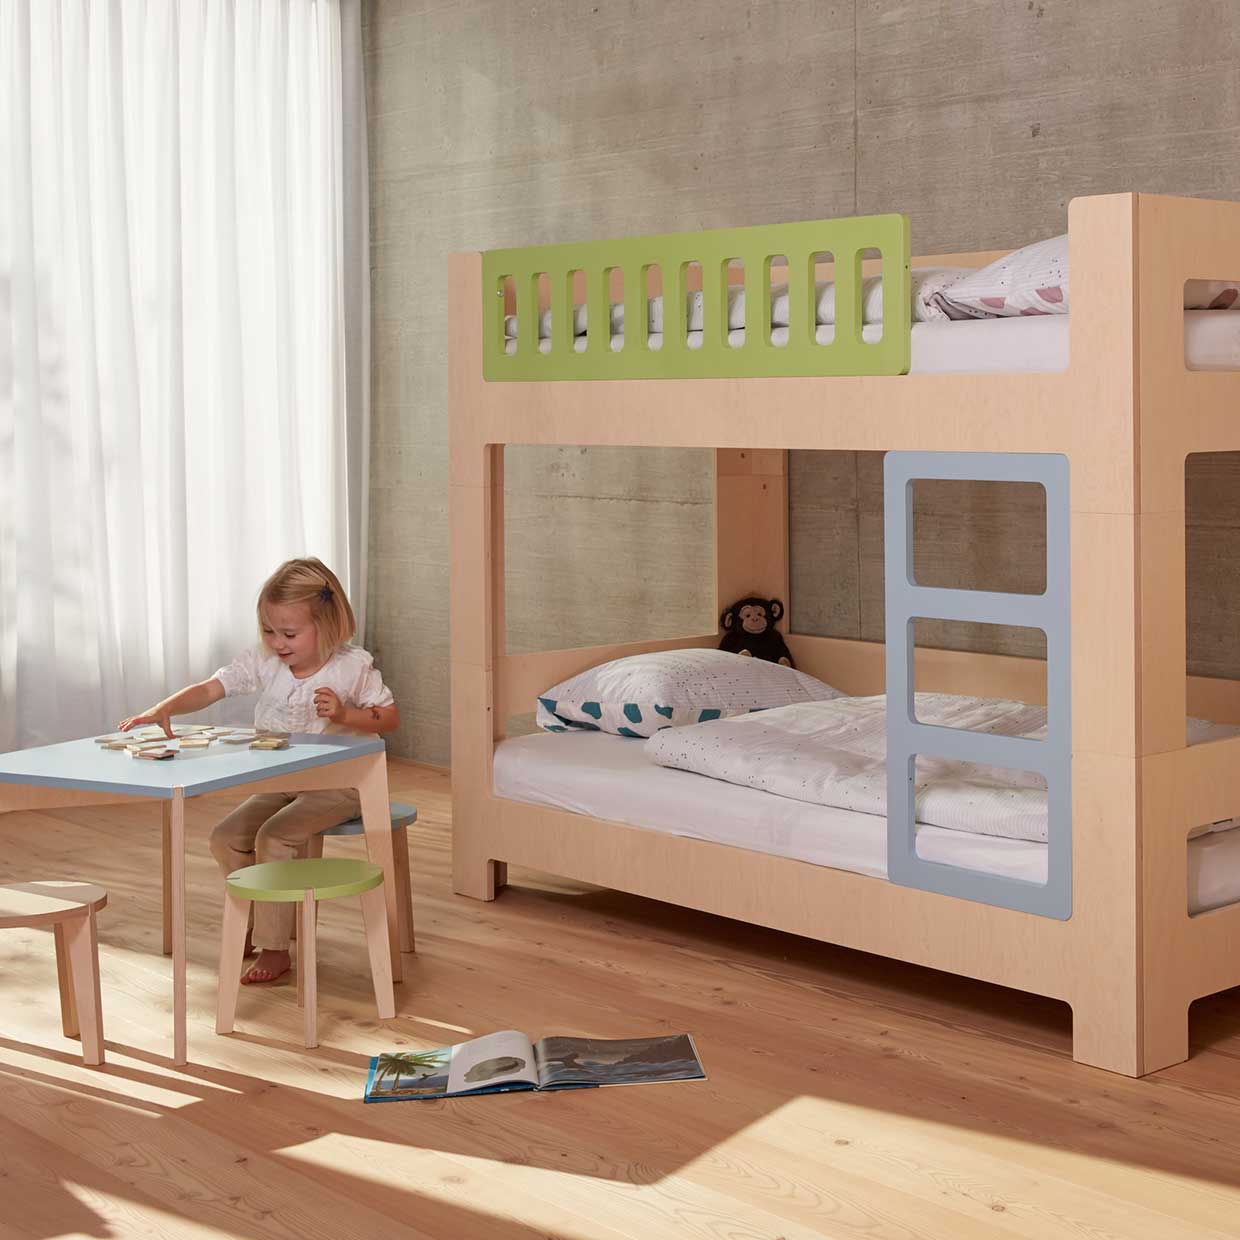 Growing Bed Loft Bed For Children Lullaby By Blueroom